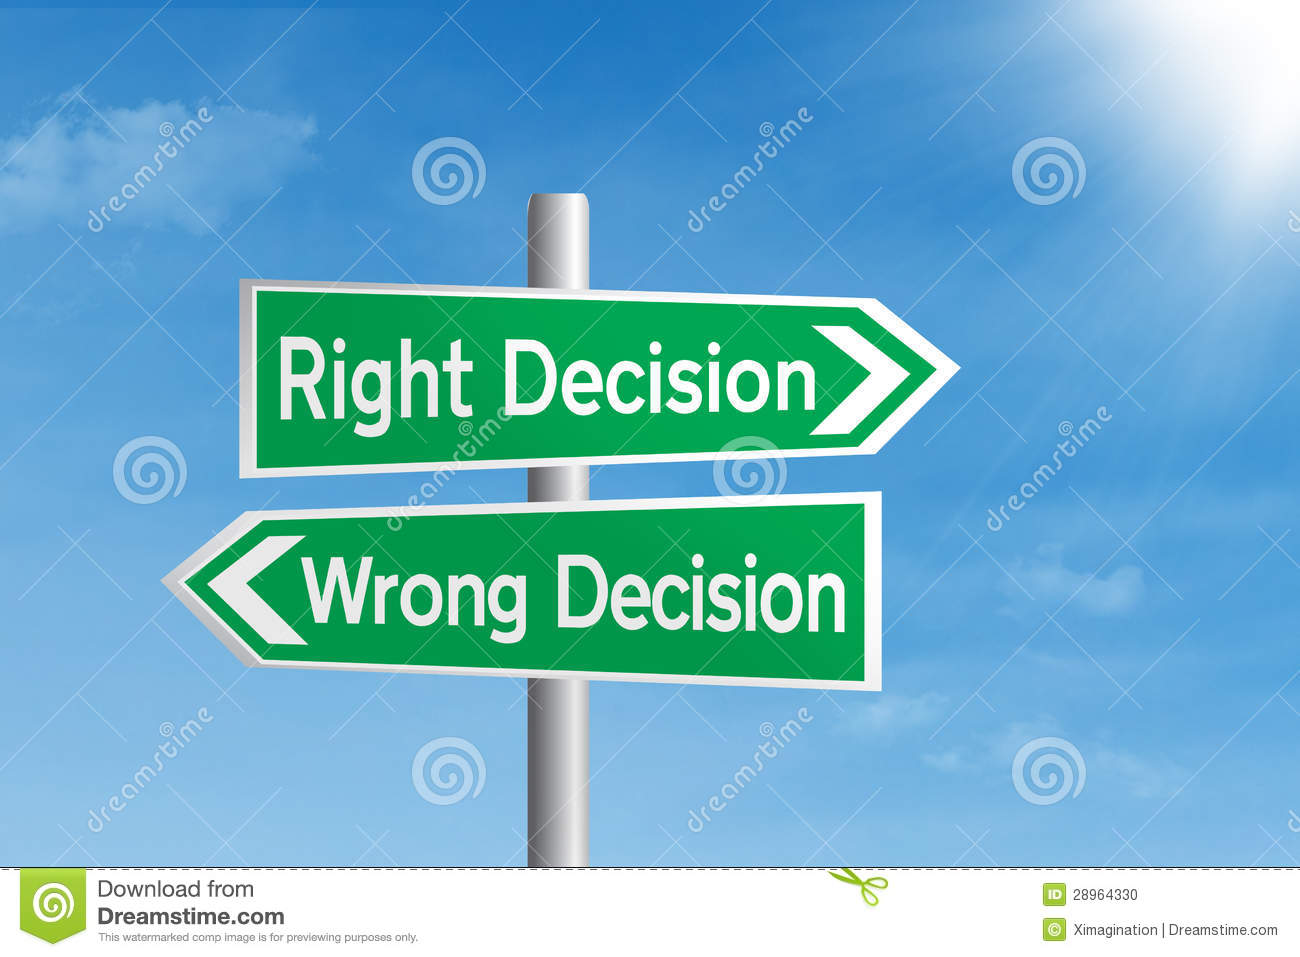 Right Decision Vs Wrong Decision Stock Photo  Image: 28964330